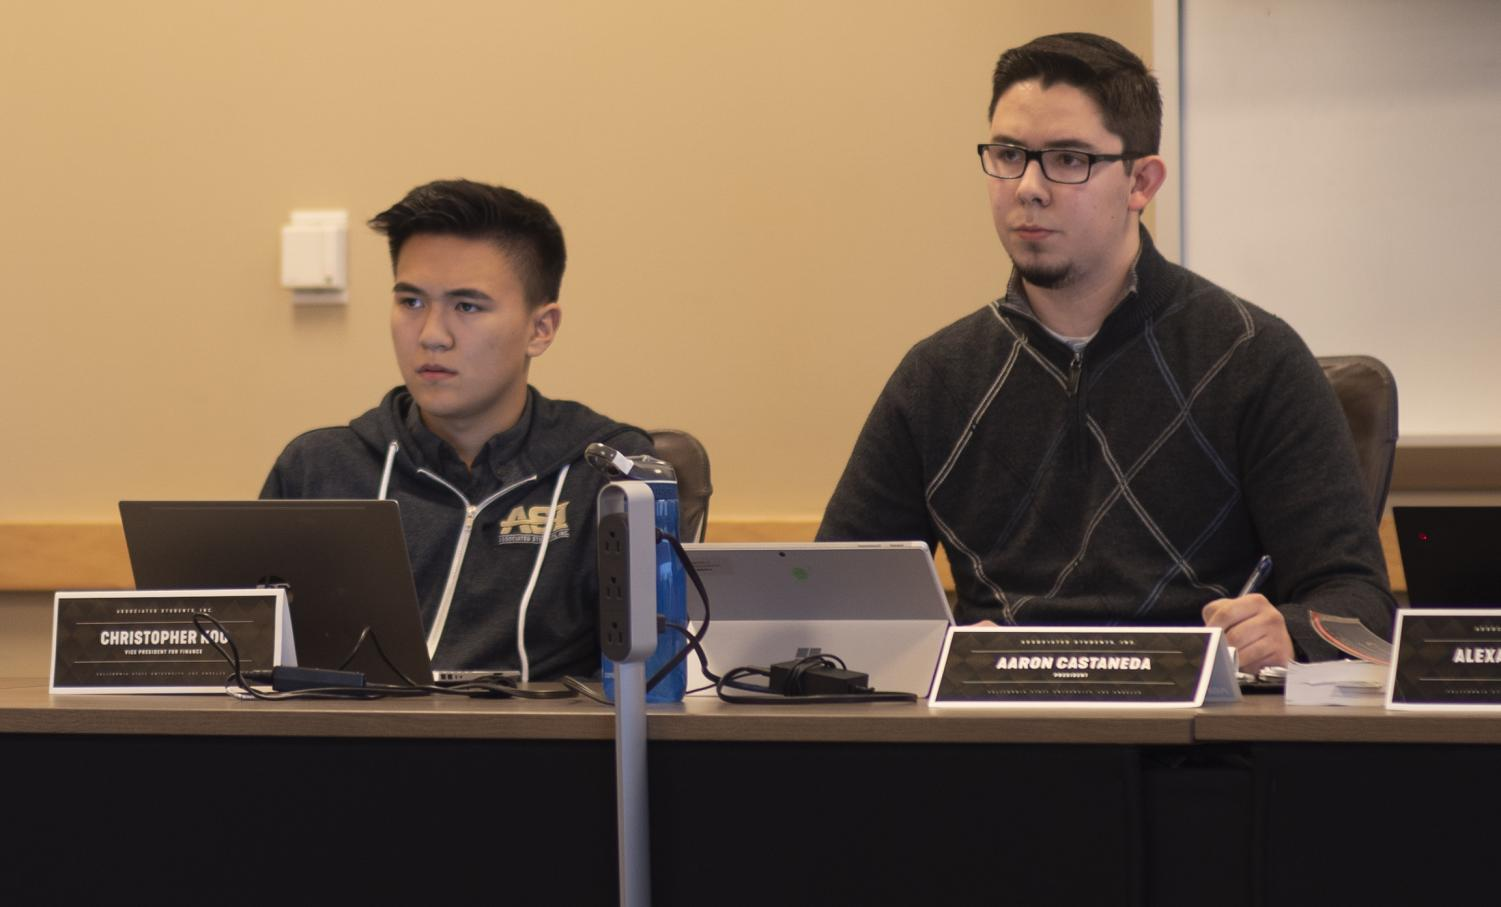 Christopher Koo (left) and Aaron Castaneda (right) listen to Cal State LA community members during a Board Members meeting on Nov. 14.